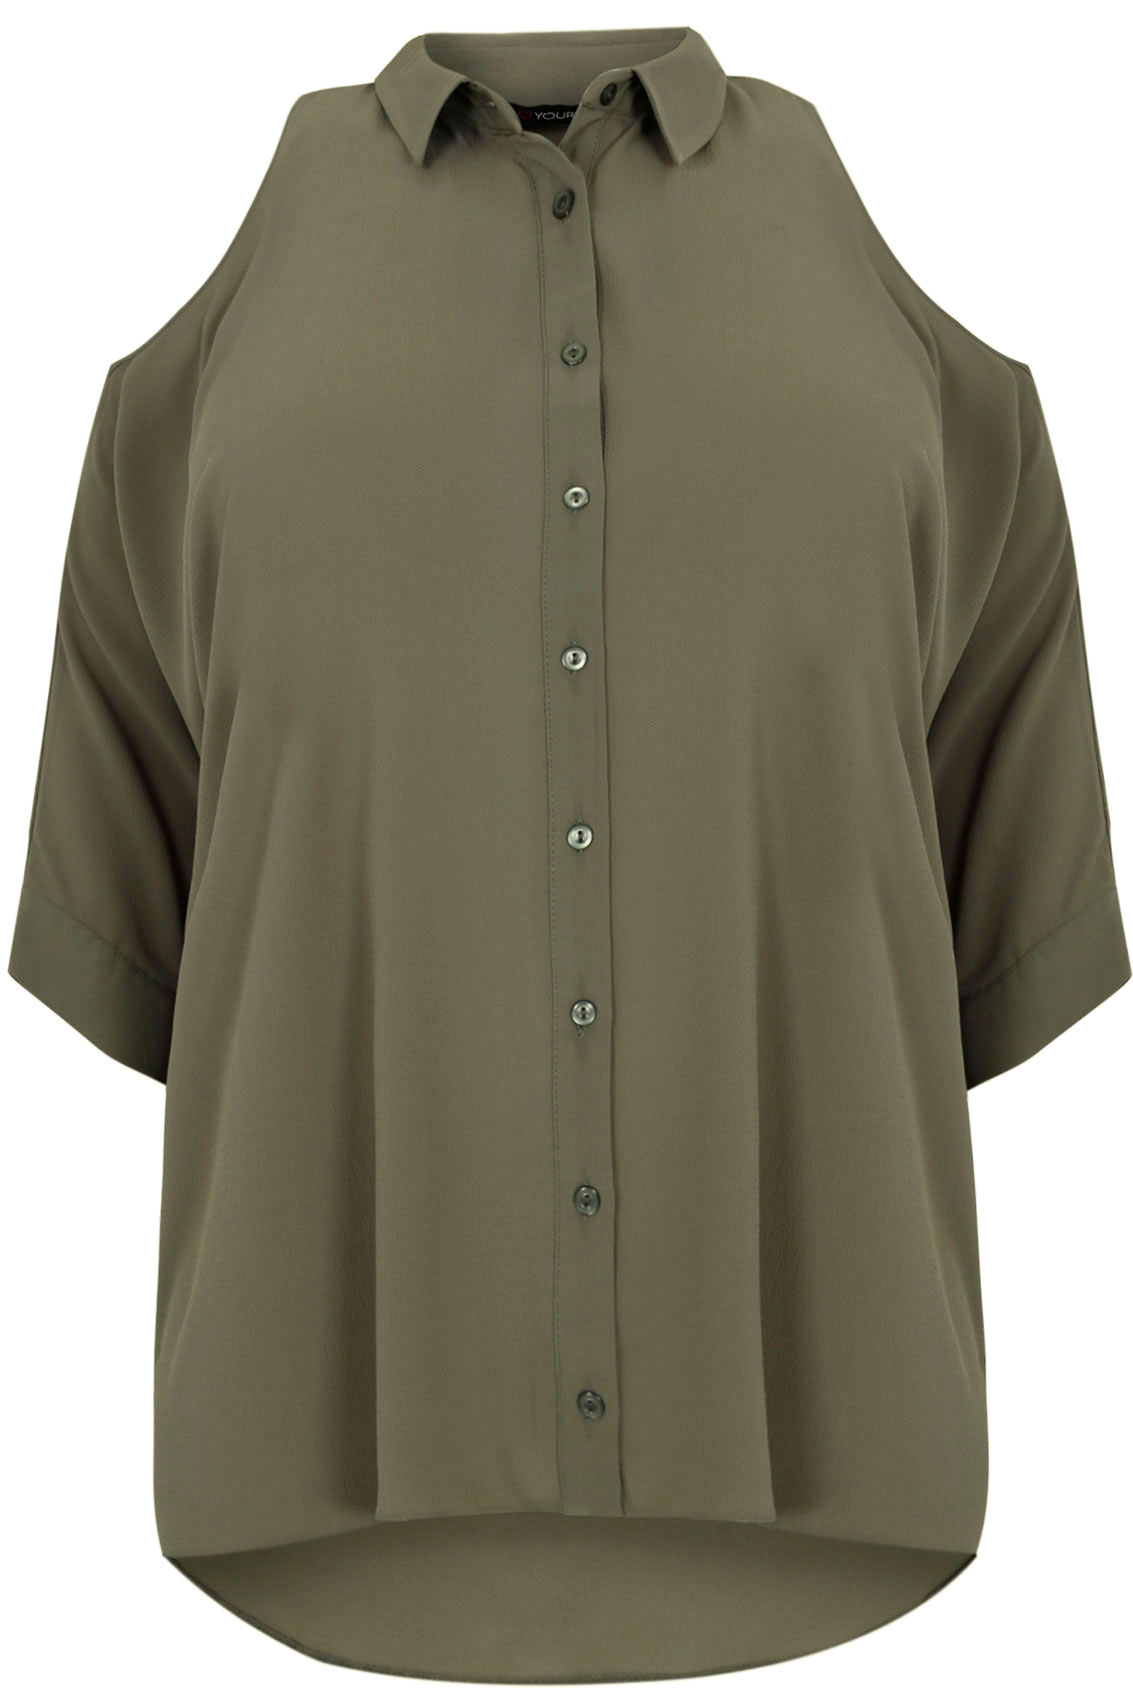 Khaki Cold Shoulder Shirt Plus Size 16 To 36